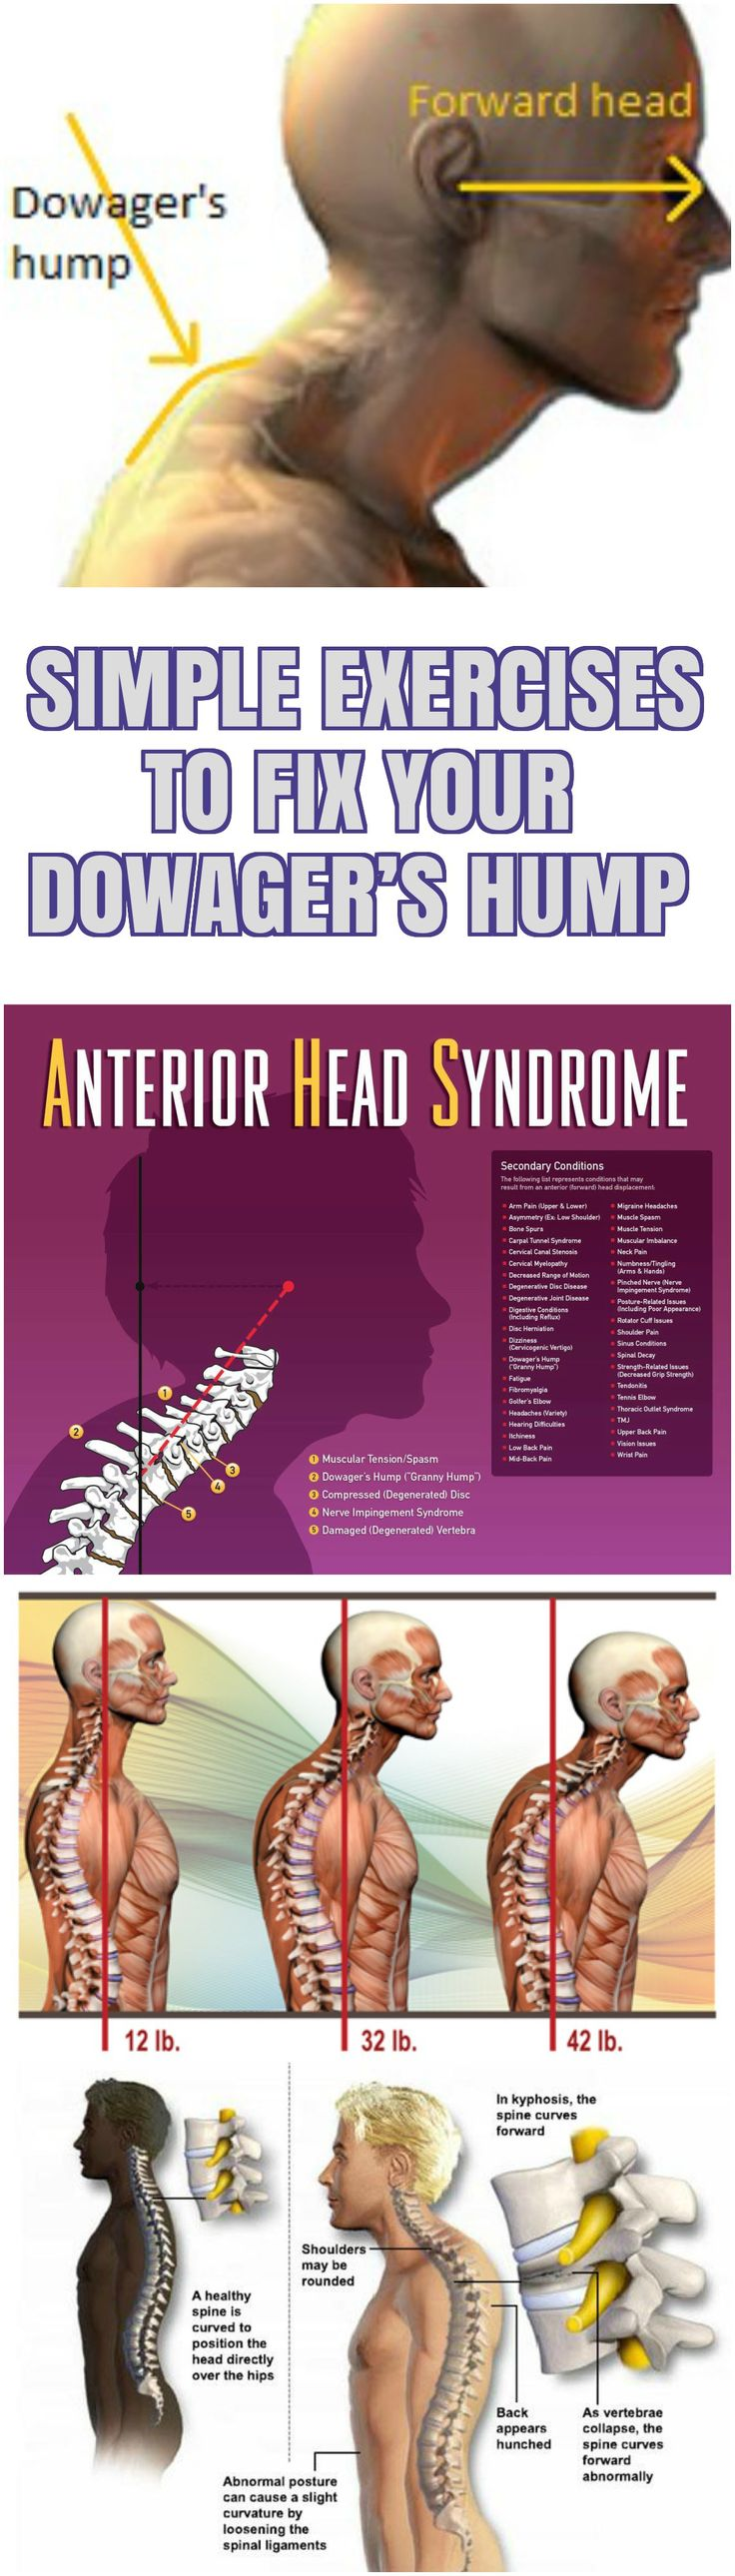 The Dowager's hump is an abnormal outward curvature of the thoracic vertebrae of the upper back. Com...